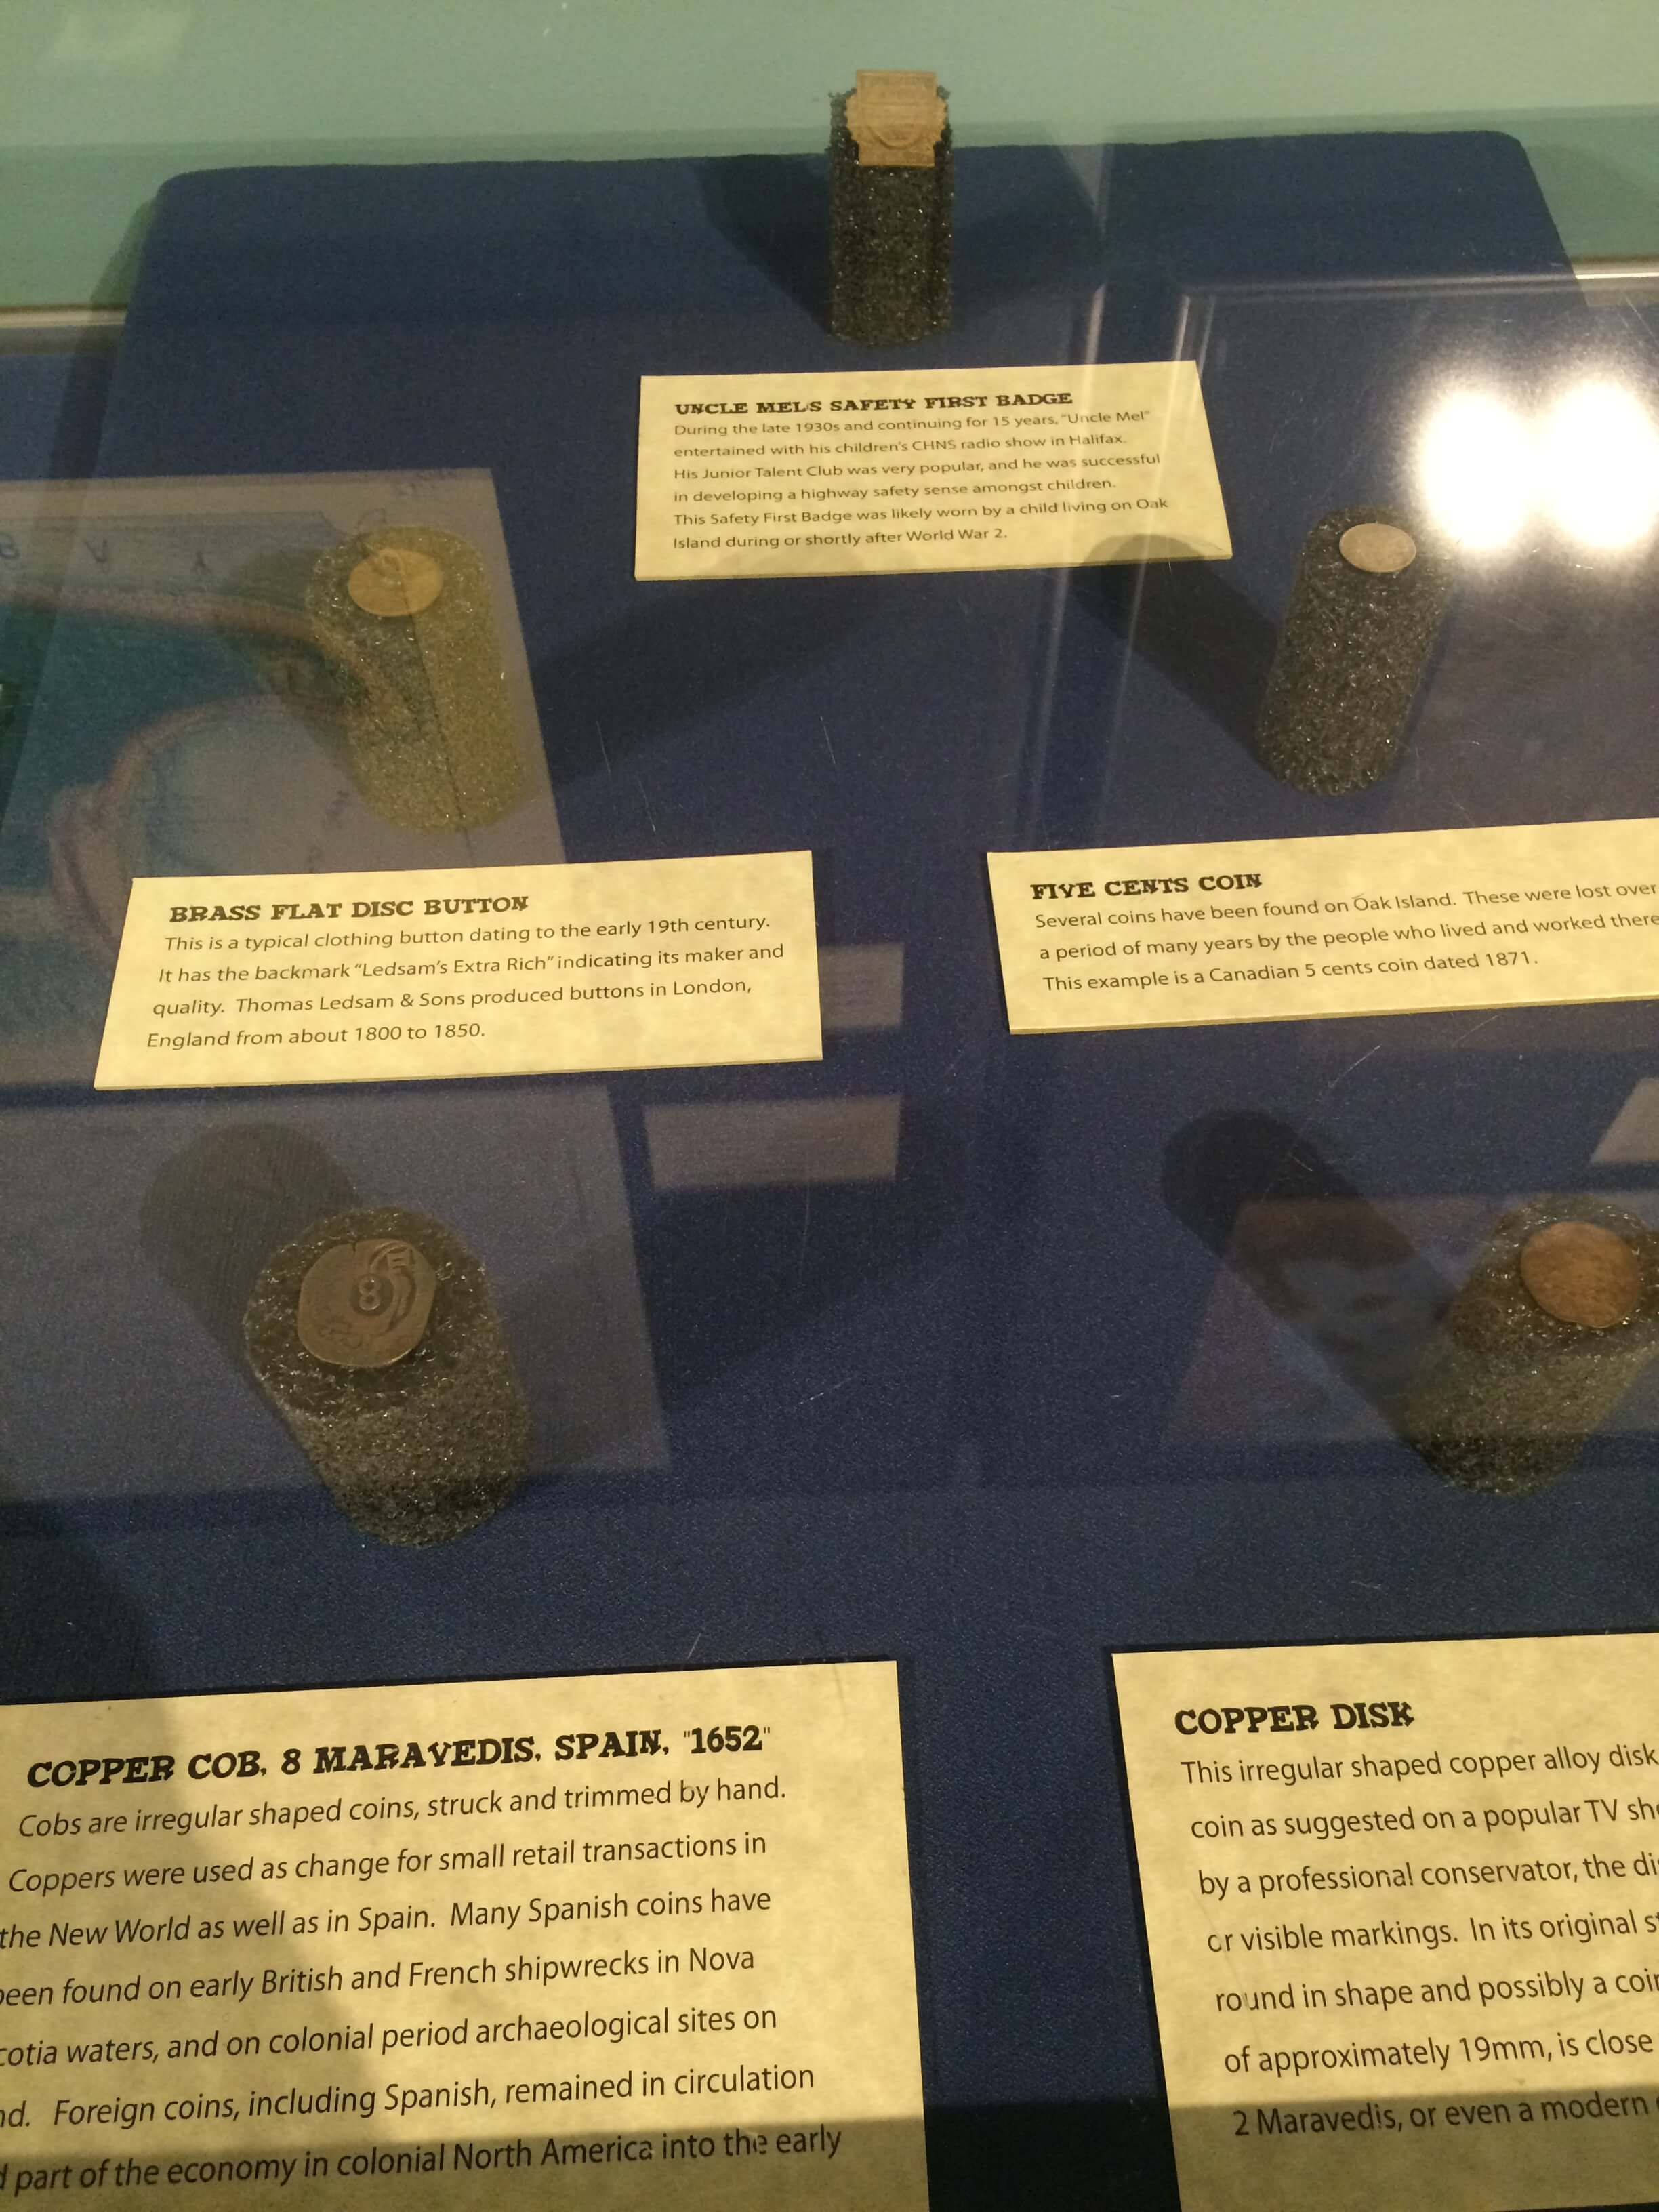 Coins, including a Spanish 8 maravedis, on display at Halifax's Museum of Natural History. Image courtesy of Ryan Phillips.